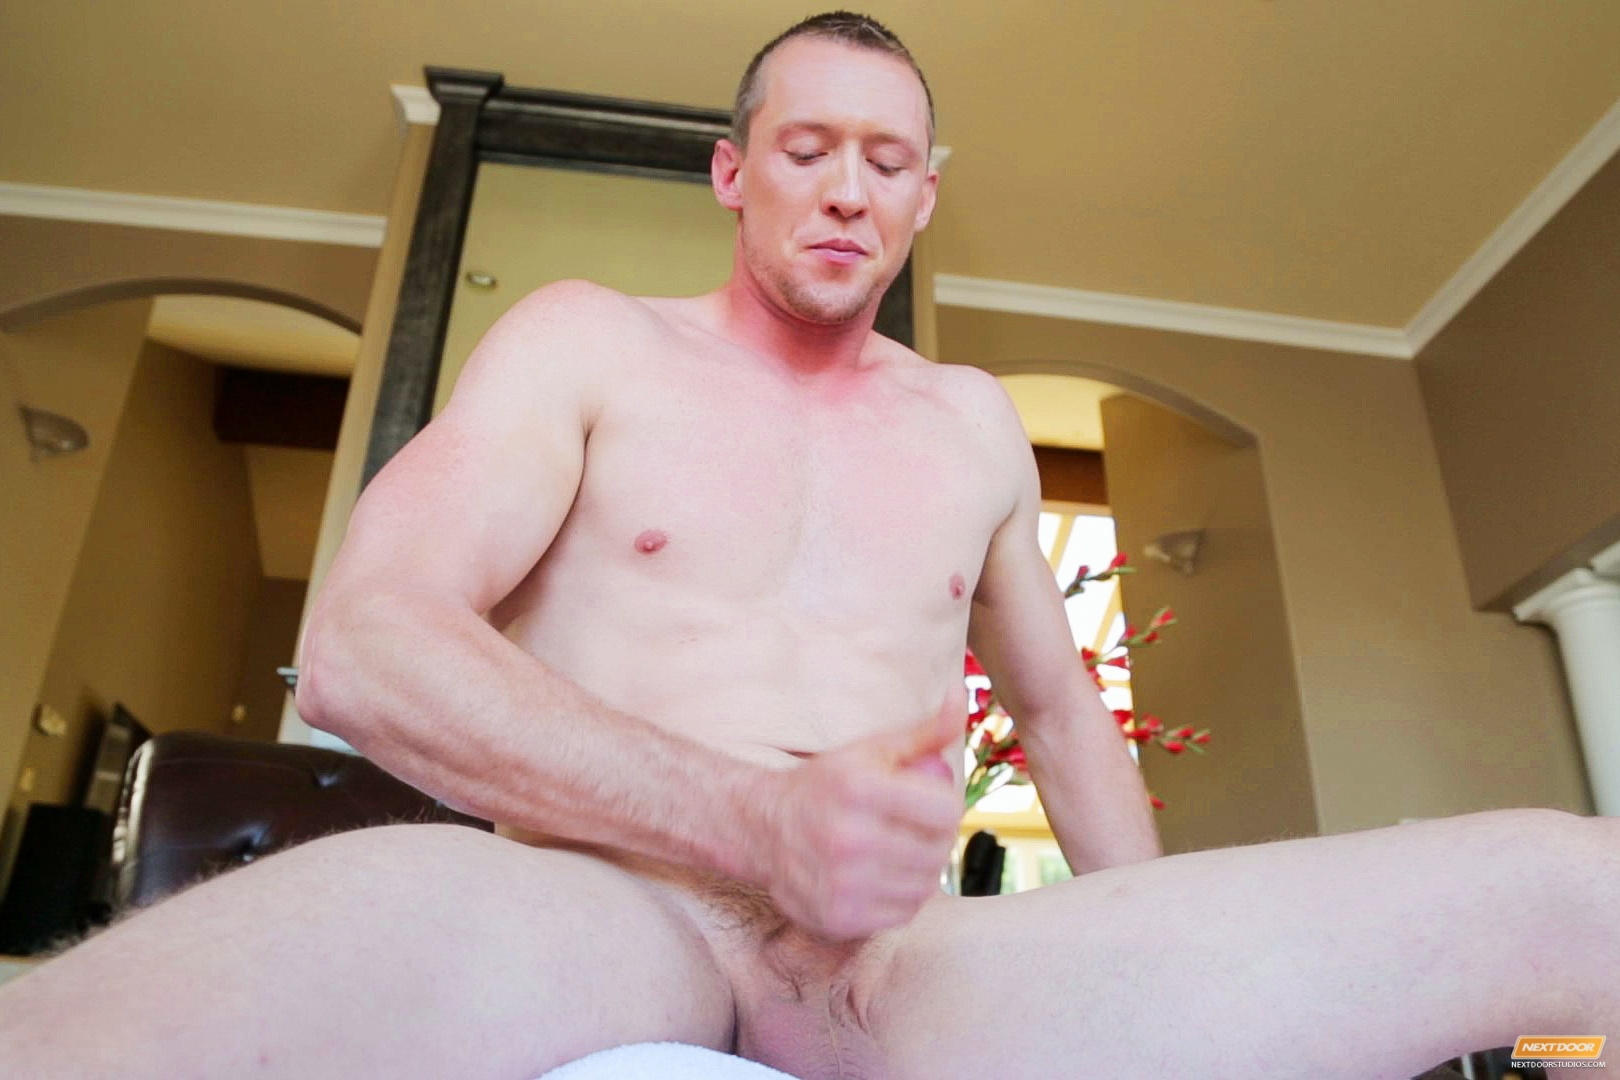 Leo Winston is a sharp-jawed, soft-spoken veritably guy, with a bit of shy streak that takes to a certain initial uncovering. Once he opens up, this Montana bred hunk reveals a thoughtful perspective and a nice, big cock to back it up. An avid outdoorsman